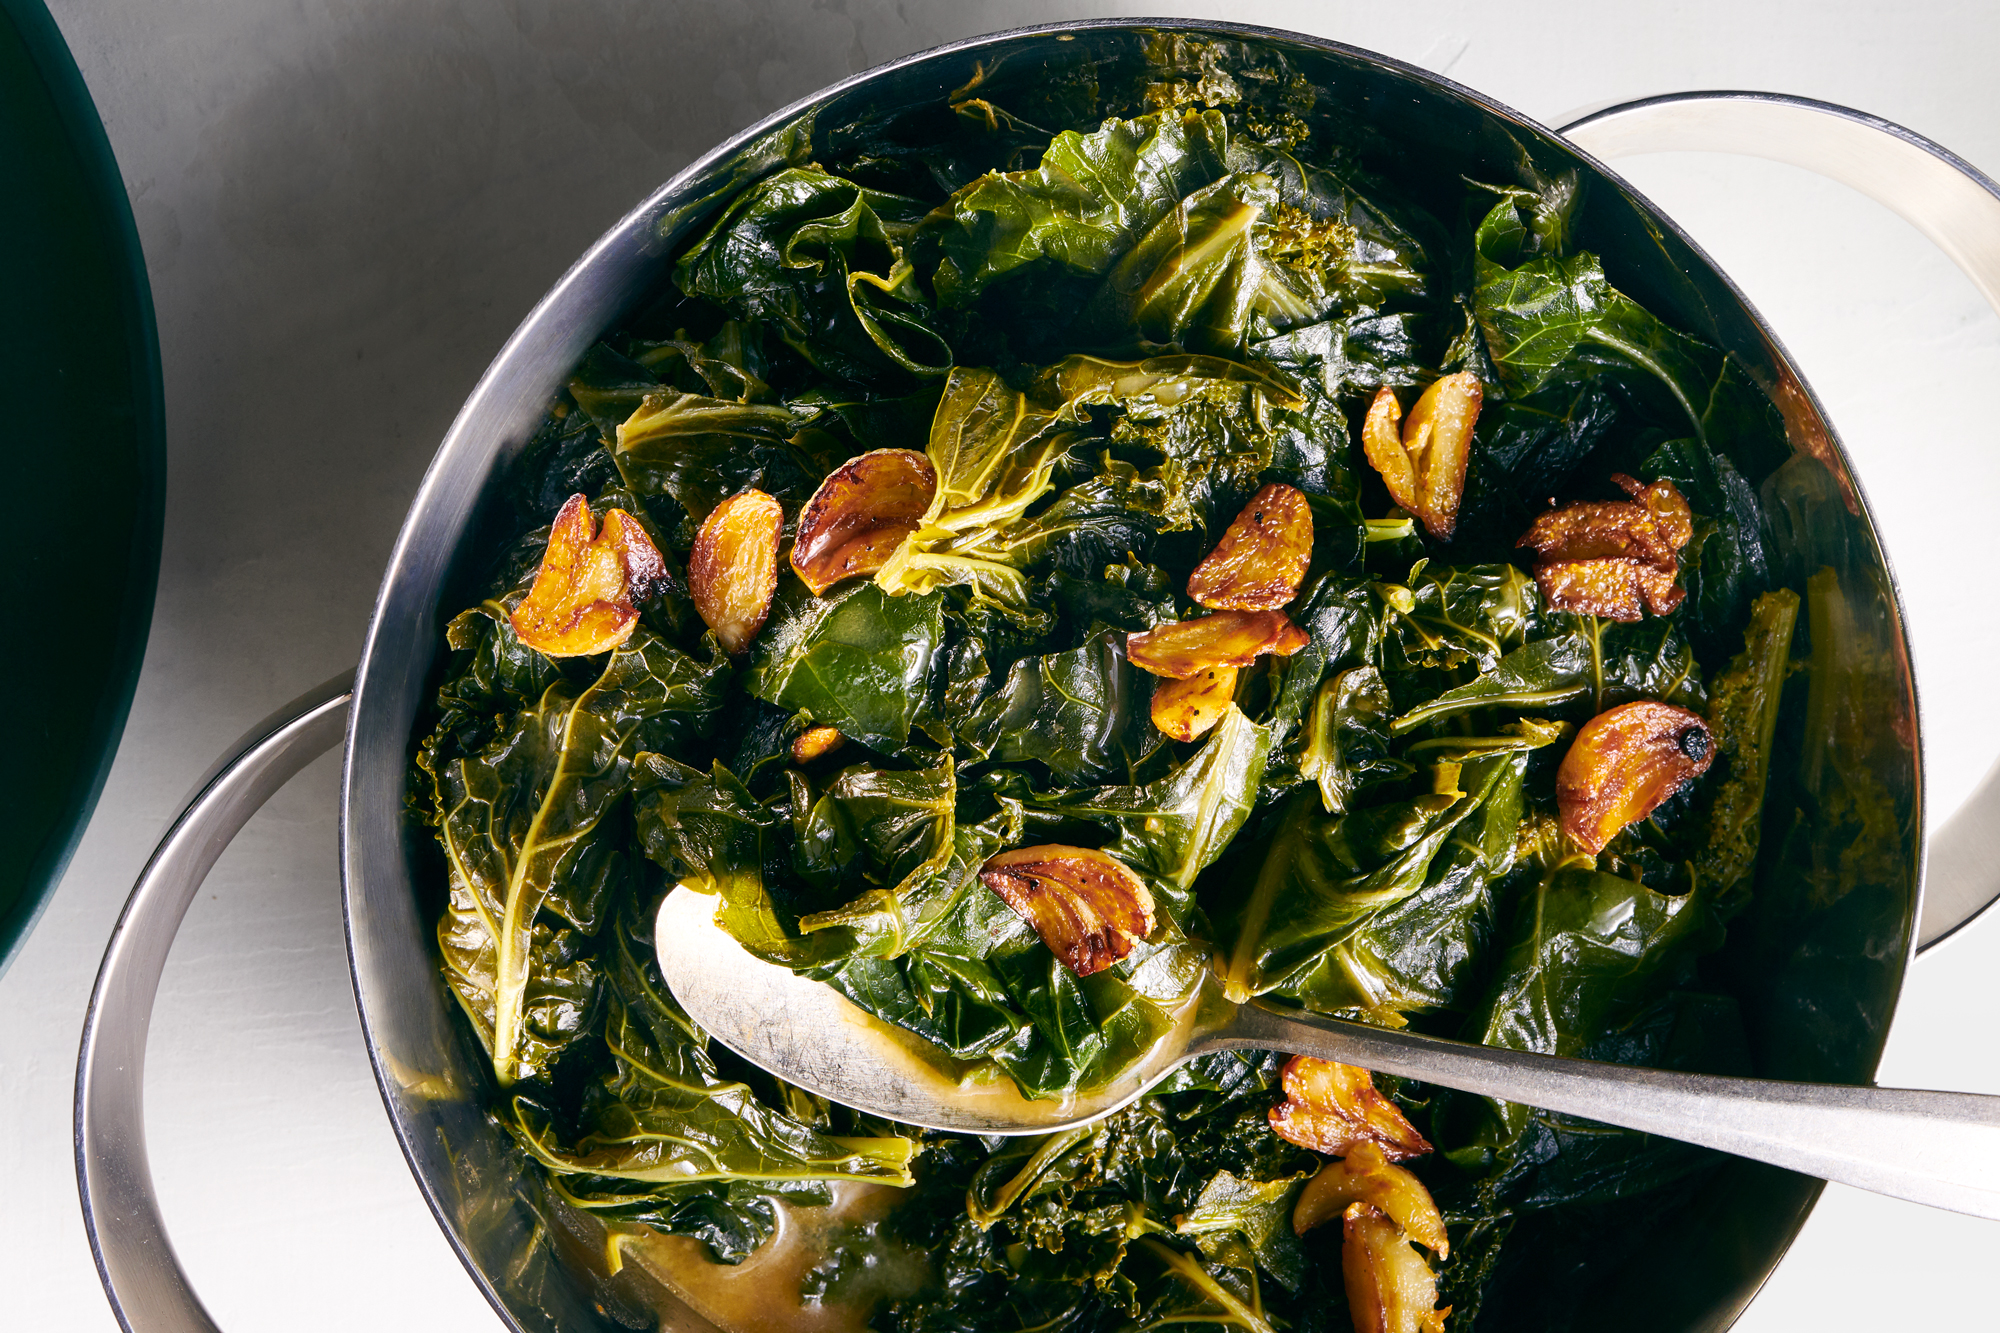 Braised Greens with Crispy Garlic and Miso Butter